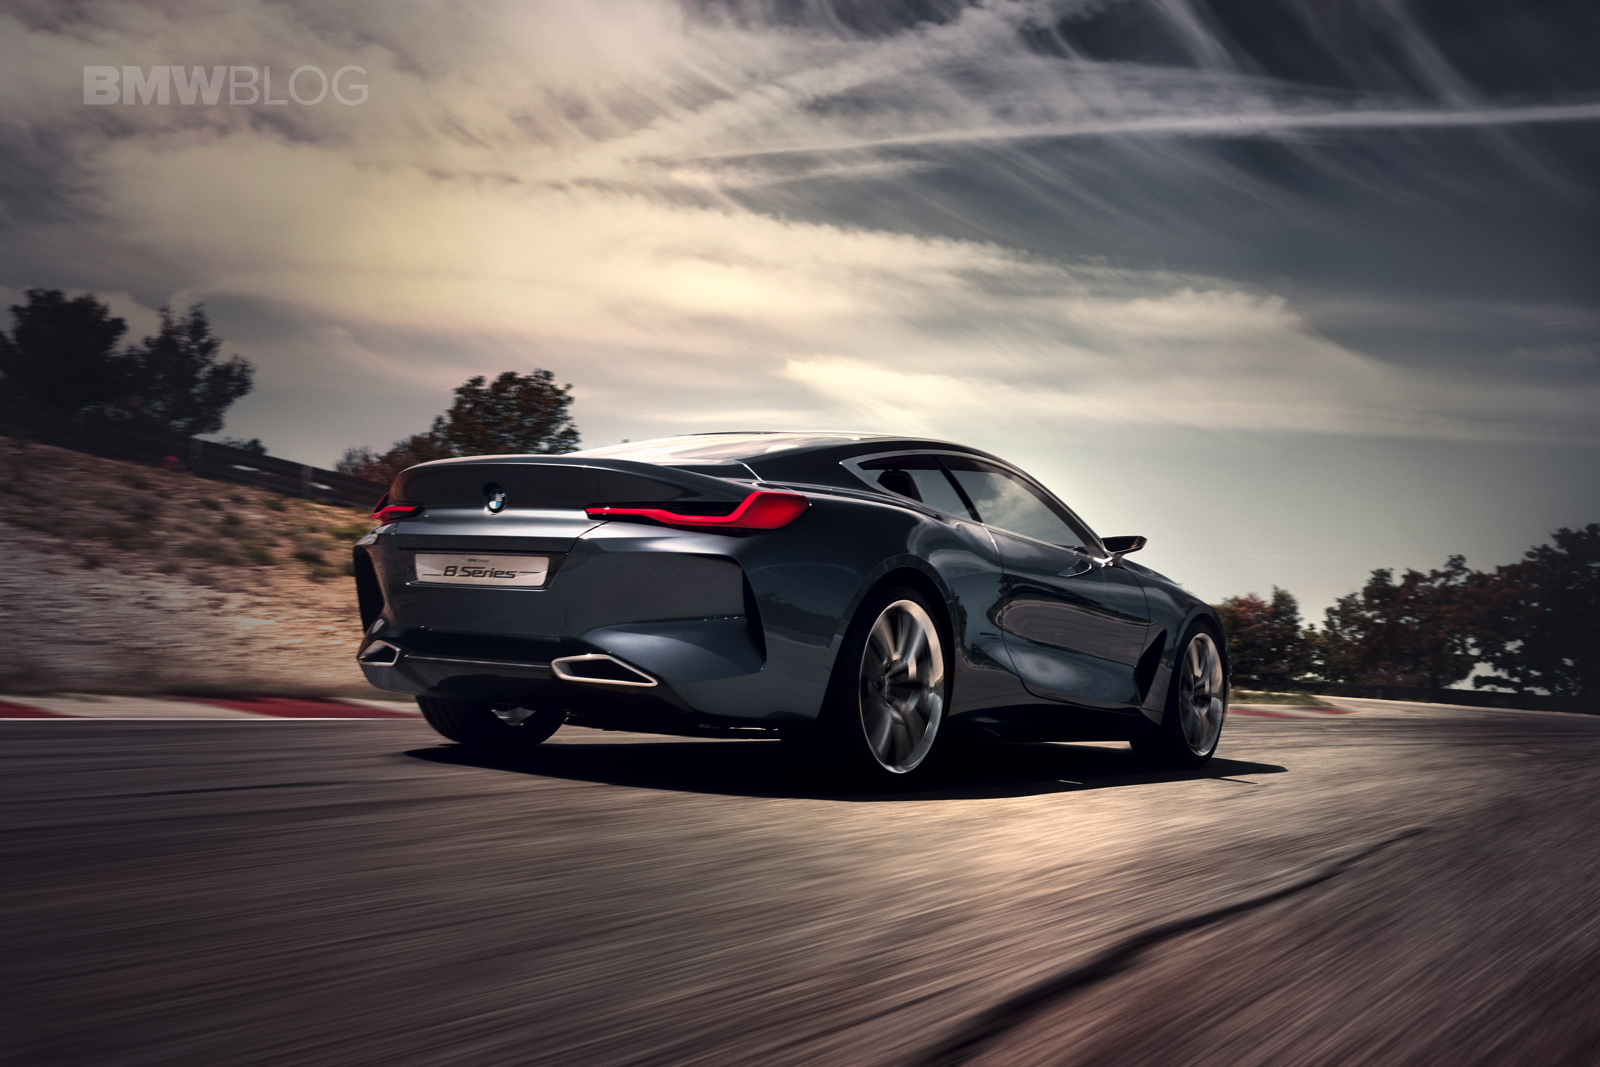 Reborn: First videos of the new BMW 8 Series Concept